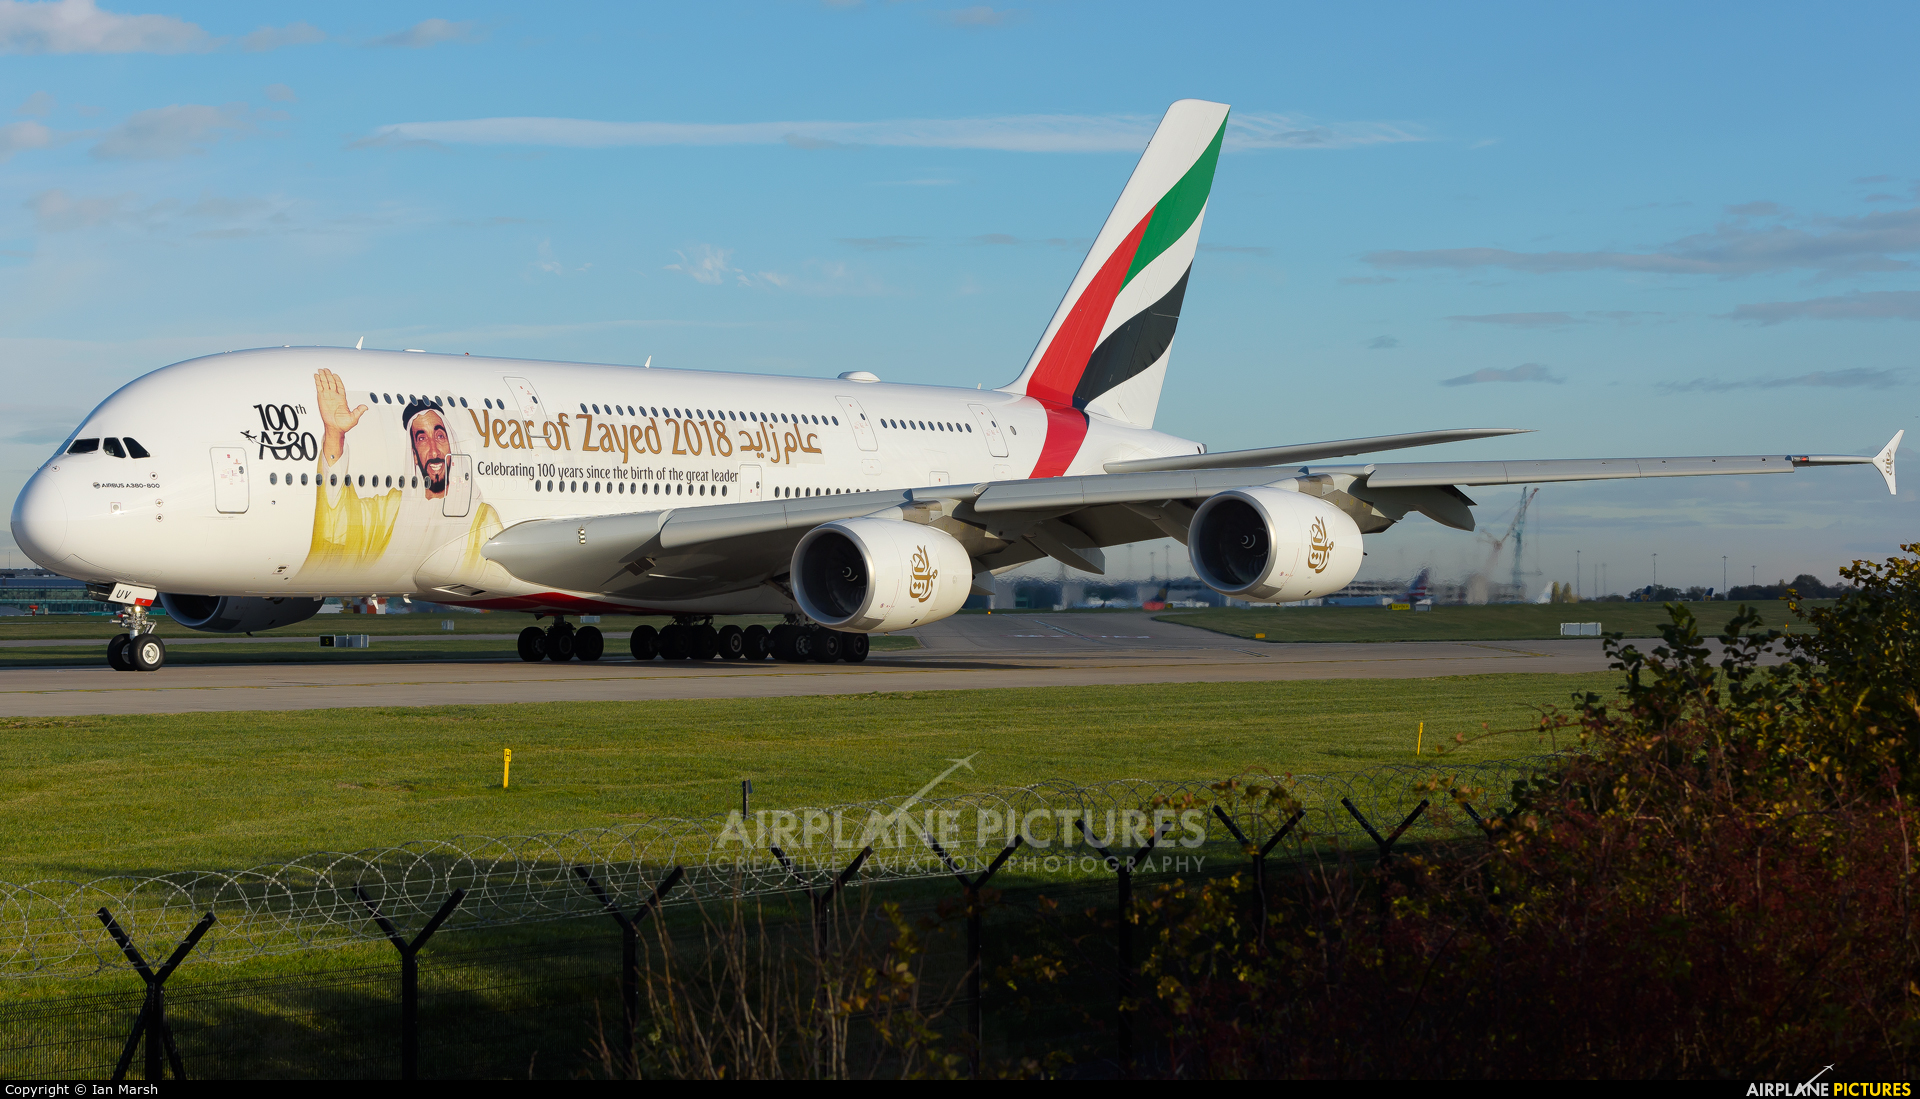 Emirates Airlines A6-EUV aircraft at Manchester